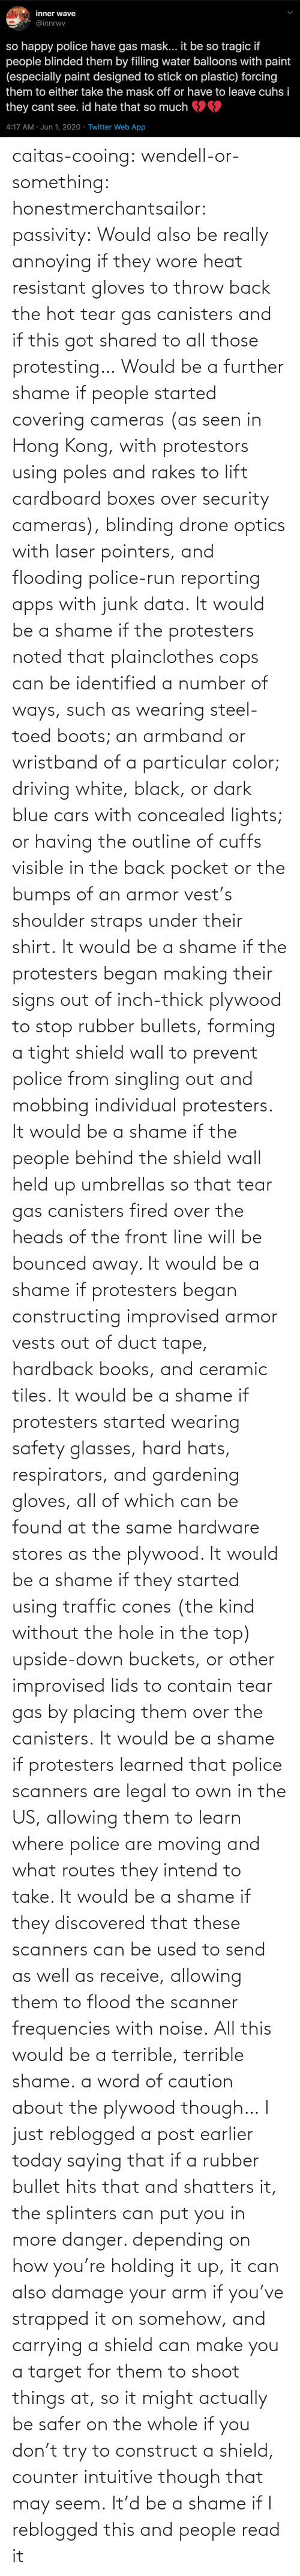 Run: caitas-cooing:  wendell-or-something: honestmerchantsailor:  passivity: Would also be really annoying if they wore heat resistant gloves to throw back the hot tear gas canisters and if this got shared to all those protesting… Would be a further shame if people started covering cameras (as seen in Hong Kong, with protestors using poles and rakes to lift cardboard boxes over security cameras), blinding drone optics with laser pointers, and flooding police-run reporting apps with junk data. It would be a shame if the protesters noted that plainclothes cops can be identified a number of ways, such as wearing steel-toed boots; an armband or wristband of a particular color; driving white, black, or dark blue cars with concealed lights; or having the outline of cuffs visible in the back pocket or the bumps of an armor vest's shoulder straps under their shirt. It would be a shame if the protesters began making their signs out of inch-thick plywood to stop rubber bullets, forming a tight shield wall to prevent police from singling out and mobbing individual protesters. It would be a shame if the people behind the shield wall held up umbrellas so that tear gas canisters fired over the heads of the front line will be bounced away. It would be a shame if protesters began constructing improvised armor vests out of duct tape, hardback books, and ceramic tiles. It would be a shame if protesters started wearing safety glasses, hard hats, respirators, and gardening gloves, all of which can be found at the same hardware stores as the plywood. It would be a shame if they started using traffic cones (the kind without the hole in the top) upside-down buckets, or other improvised lids to contain tear gas by placing them over the canisters. It would be a shame if protesters learned that police scanners are legal to own in the US, allowing them to learn where police are moving and what routes they intend to take. It would be a shame if they discovered that these scanners can be used to send as well as receive, allowing them to flood the scanner frequencies with noise. All this would be a terrible, terrible shame.    a word of caution about the plywood though… I just reblogged a post earlier today saying that if a rubber bullet hits that and shatters it, the splinters can put you in more danger. depending on how you're holding it up, it can also damage your arm if you've strapped it on somehow, and carrying a shield can make you a target for them to shoot things at, so it might actually be safer on the whole if you don't try to construct a shield, counter intuitive though that may seem.    It'd be a shame if I reblogged this and people read it